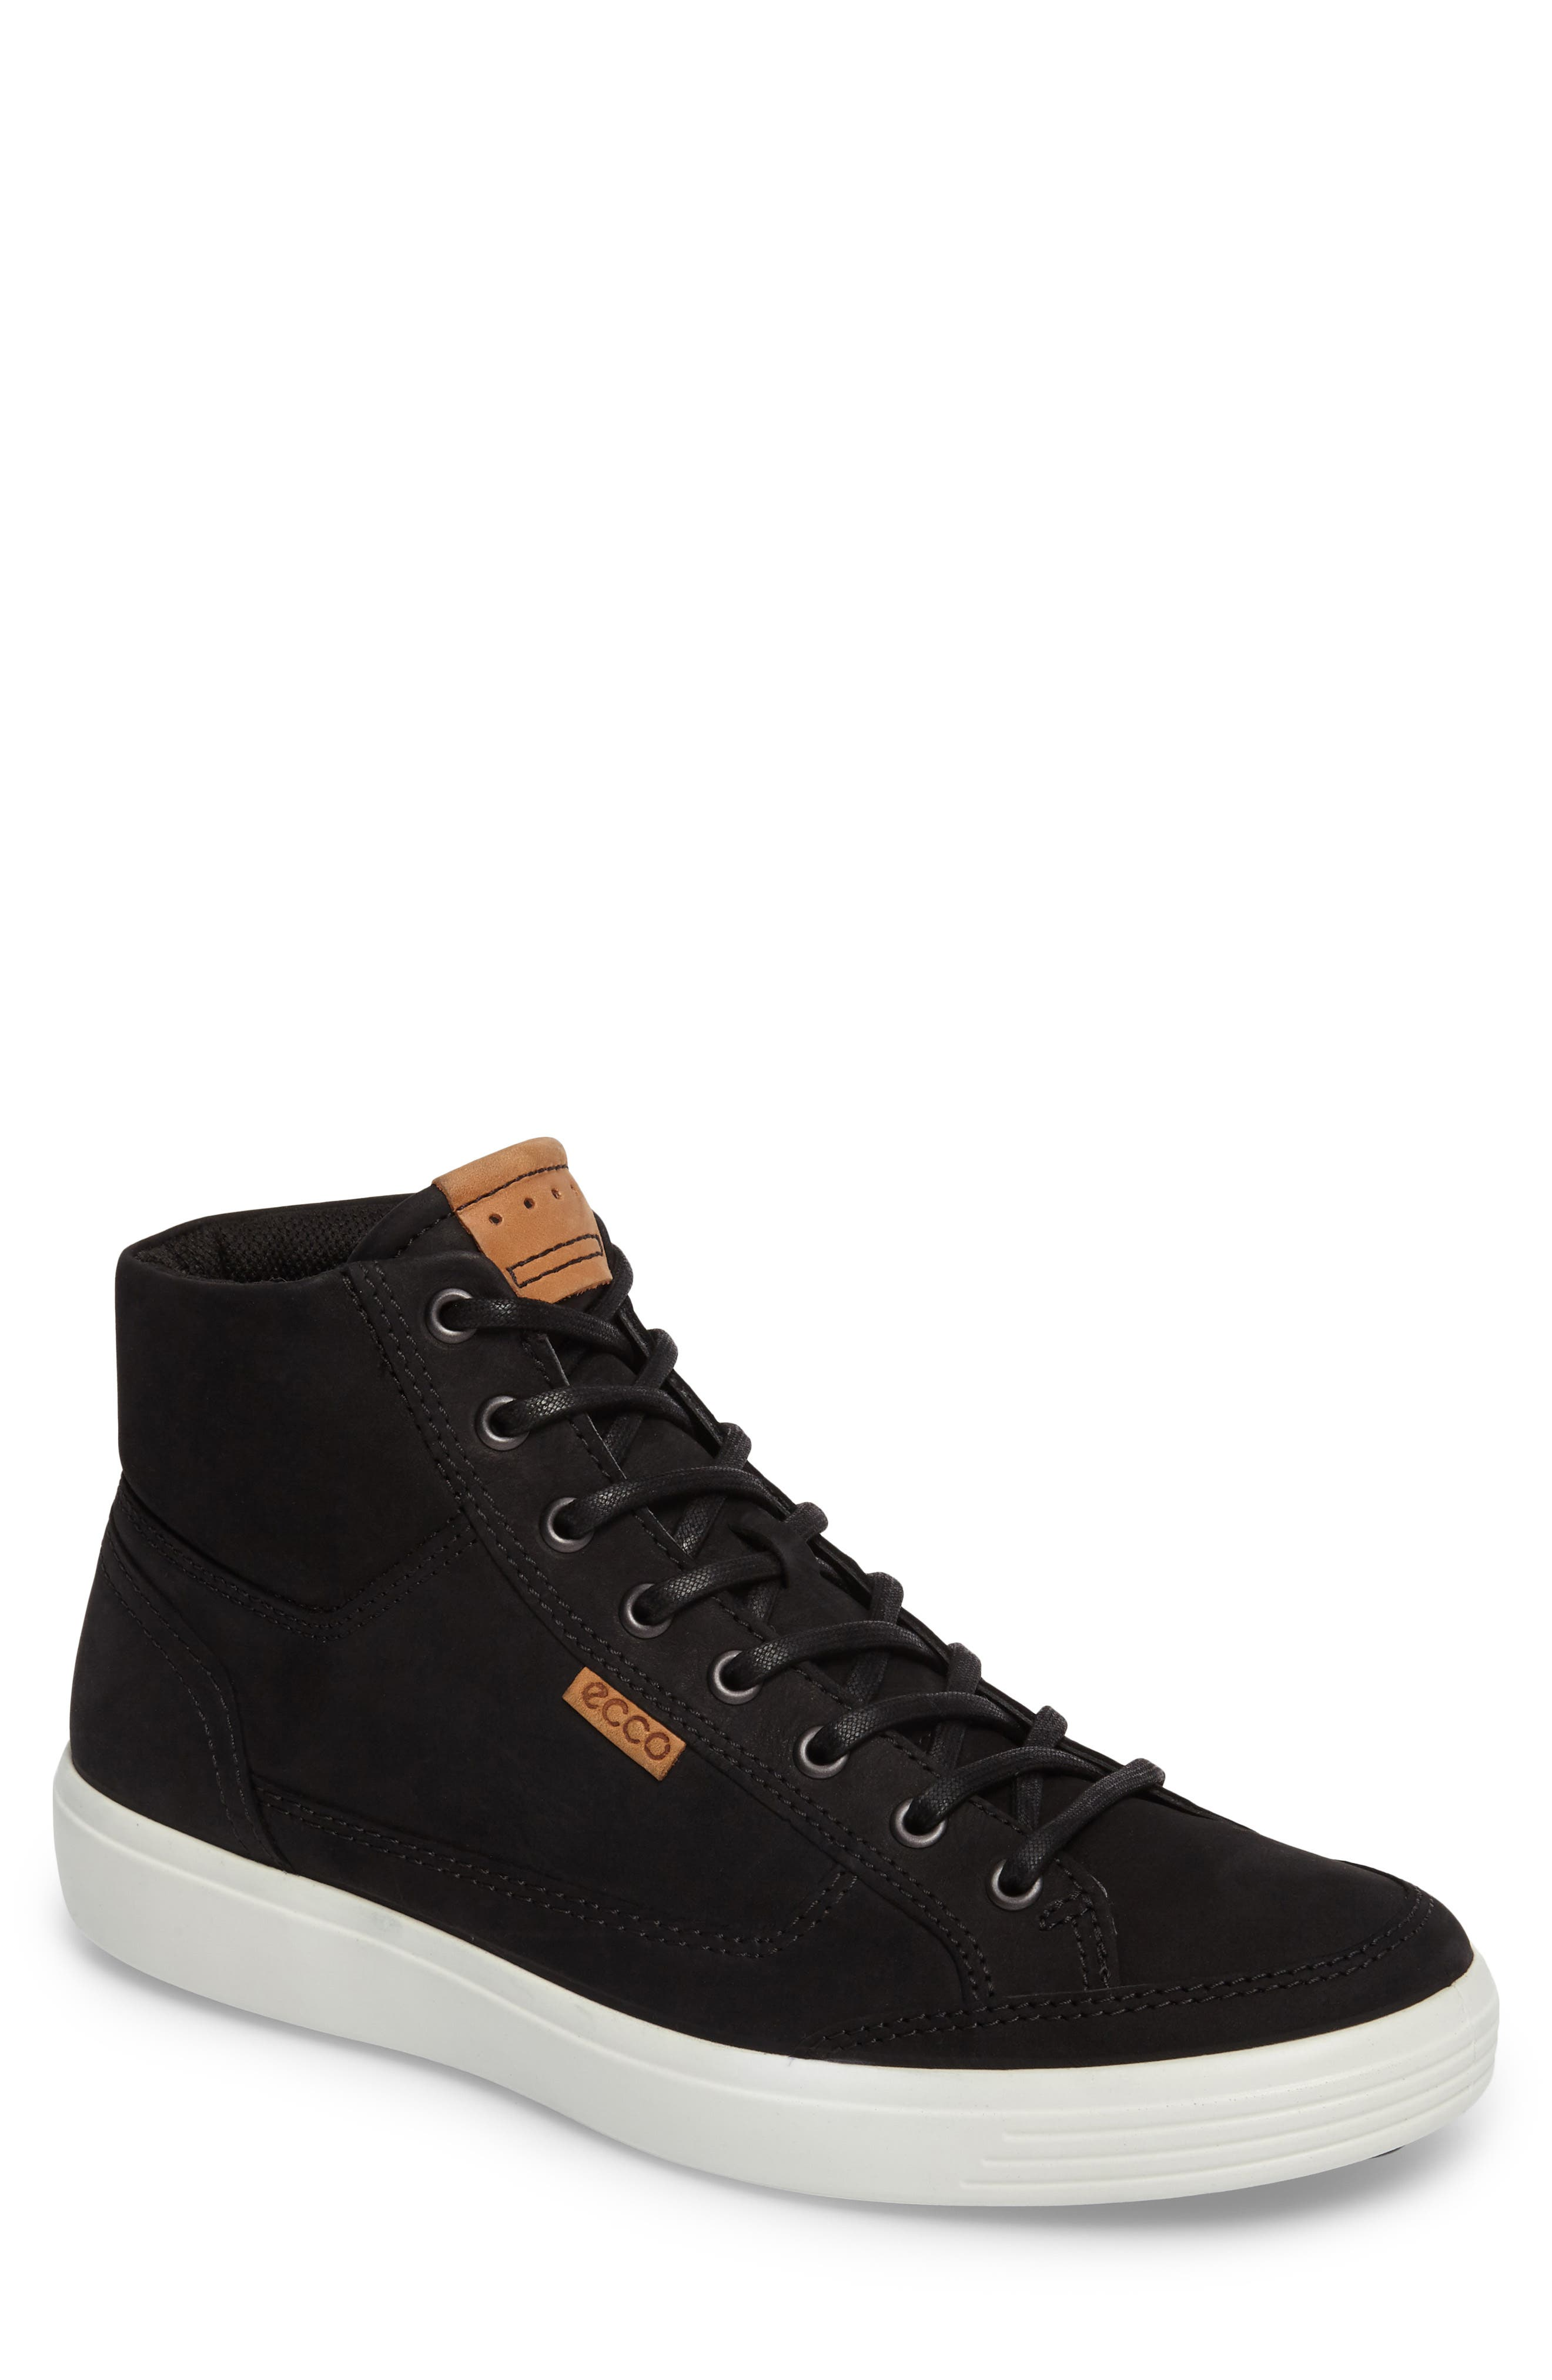 Soft 7 Sneaker,                             Main thumbnail 1, color,                             BLACK LEATHER